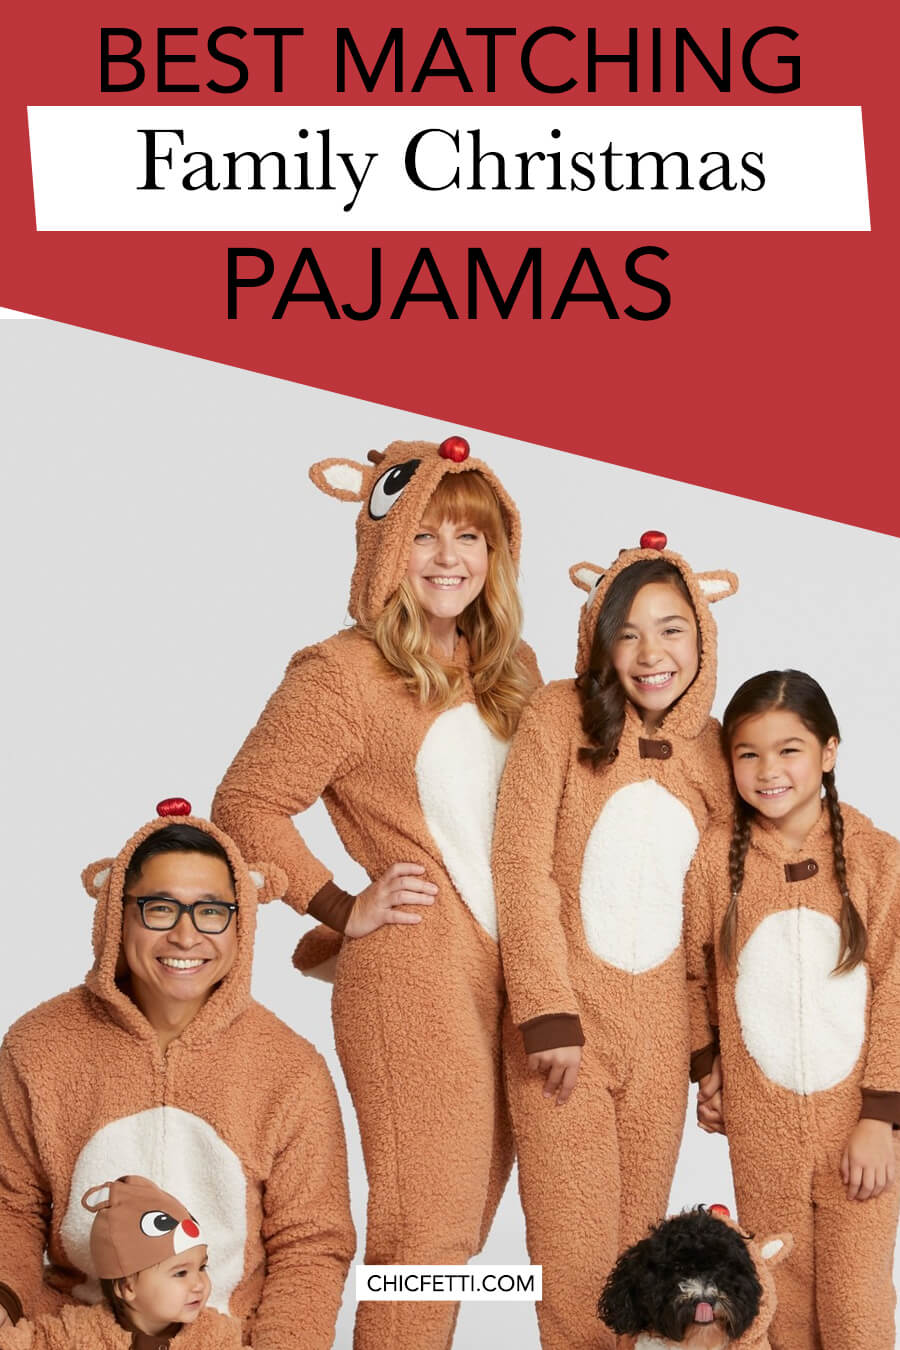 Best Matching Family Christmas Pajamas - get matching Christmas pajamas for your whole family. Your family will look adorable in matching family pajamas on Christmas morning. #christmas #christmasideas #christmaspajamas #familypajamas #christmastradition #familypjs #christmaspjs